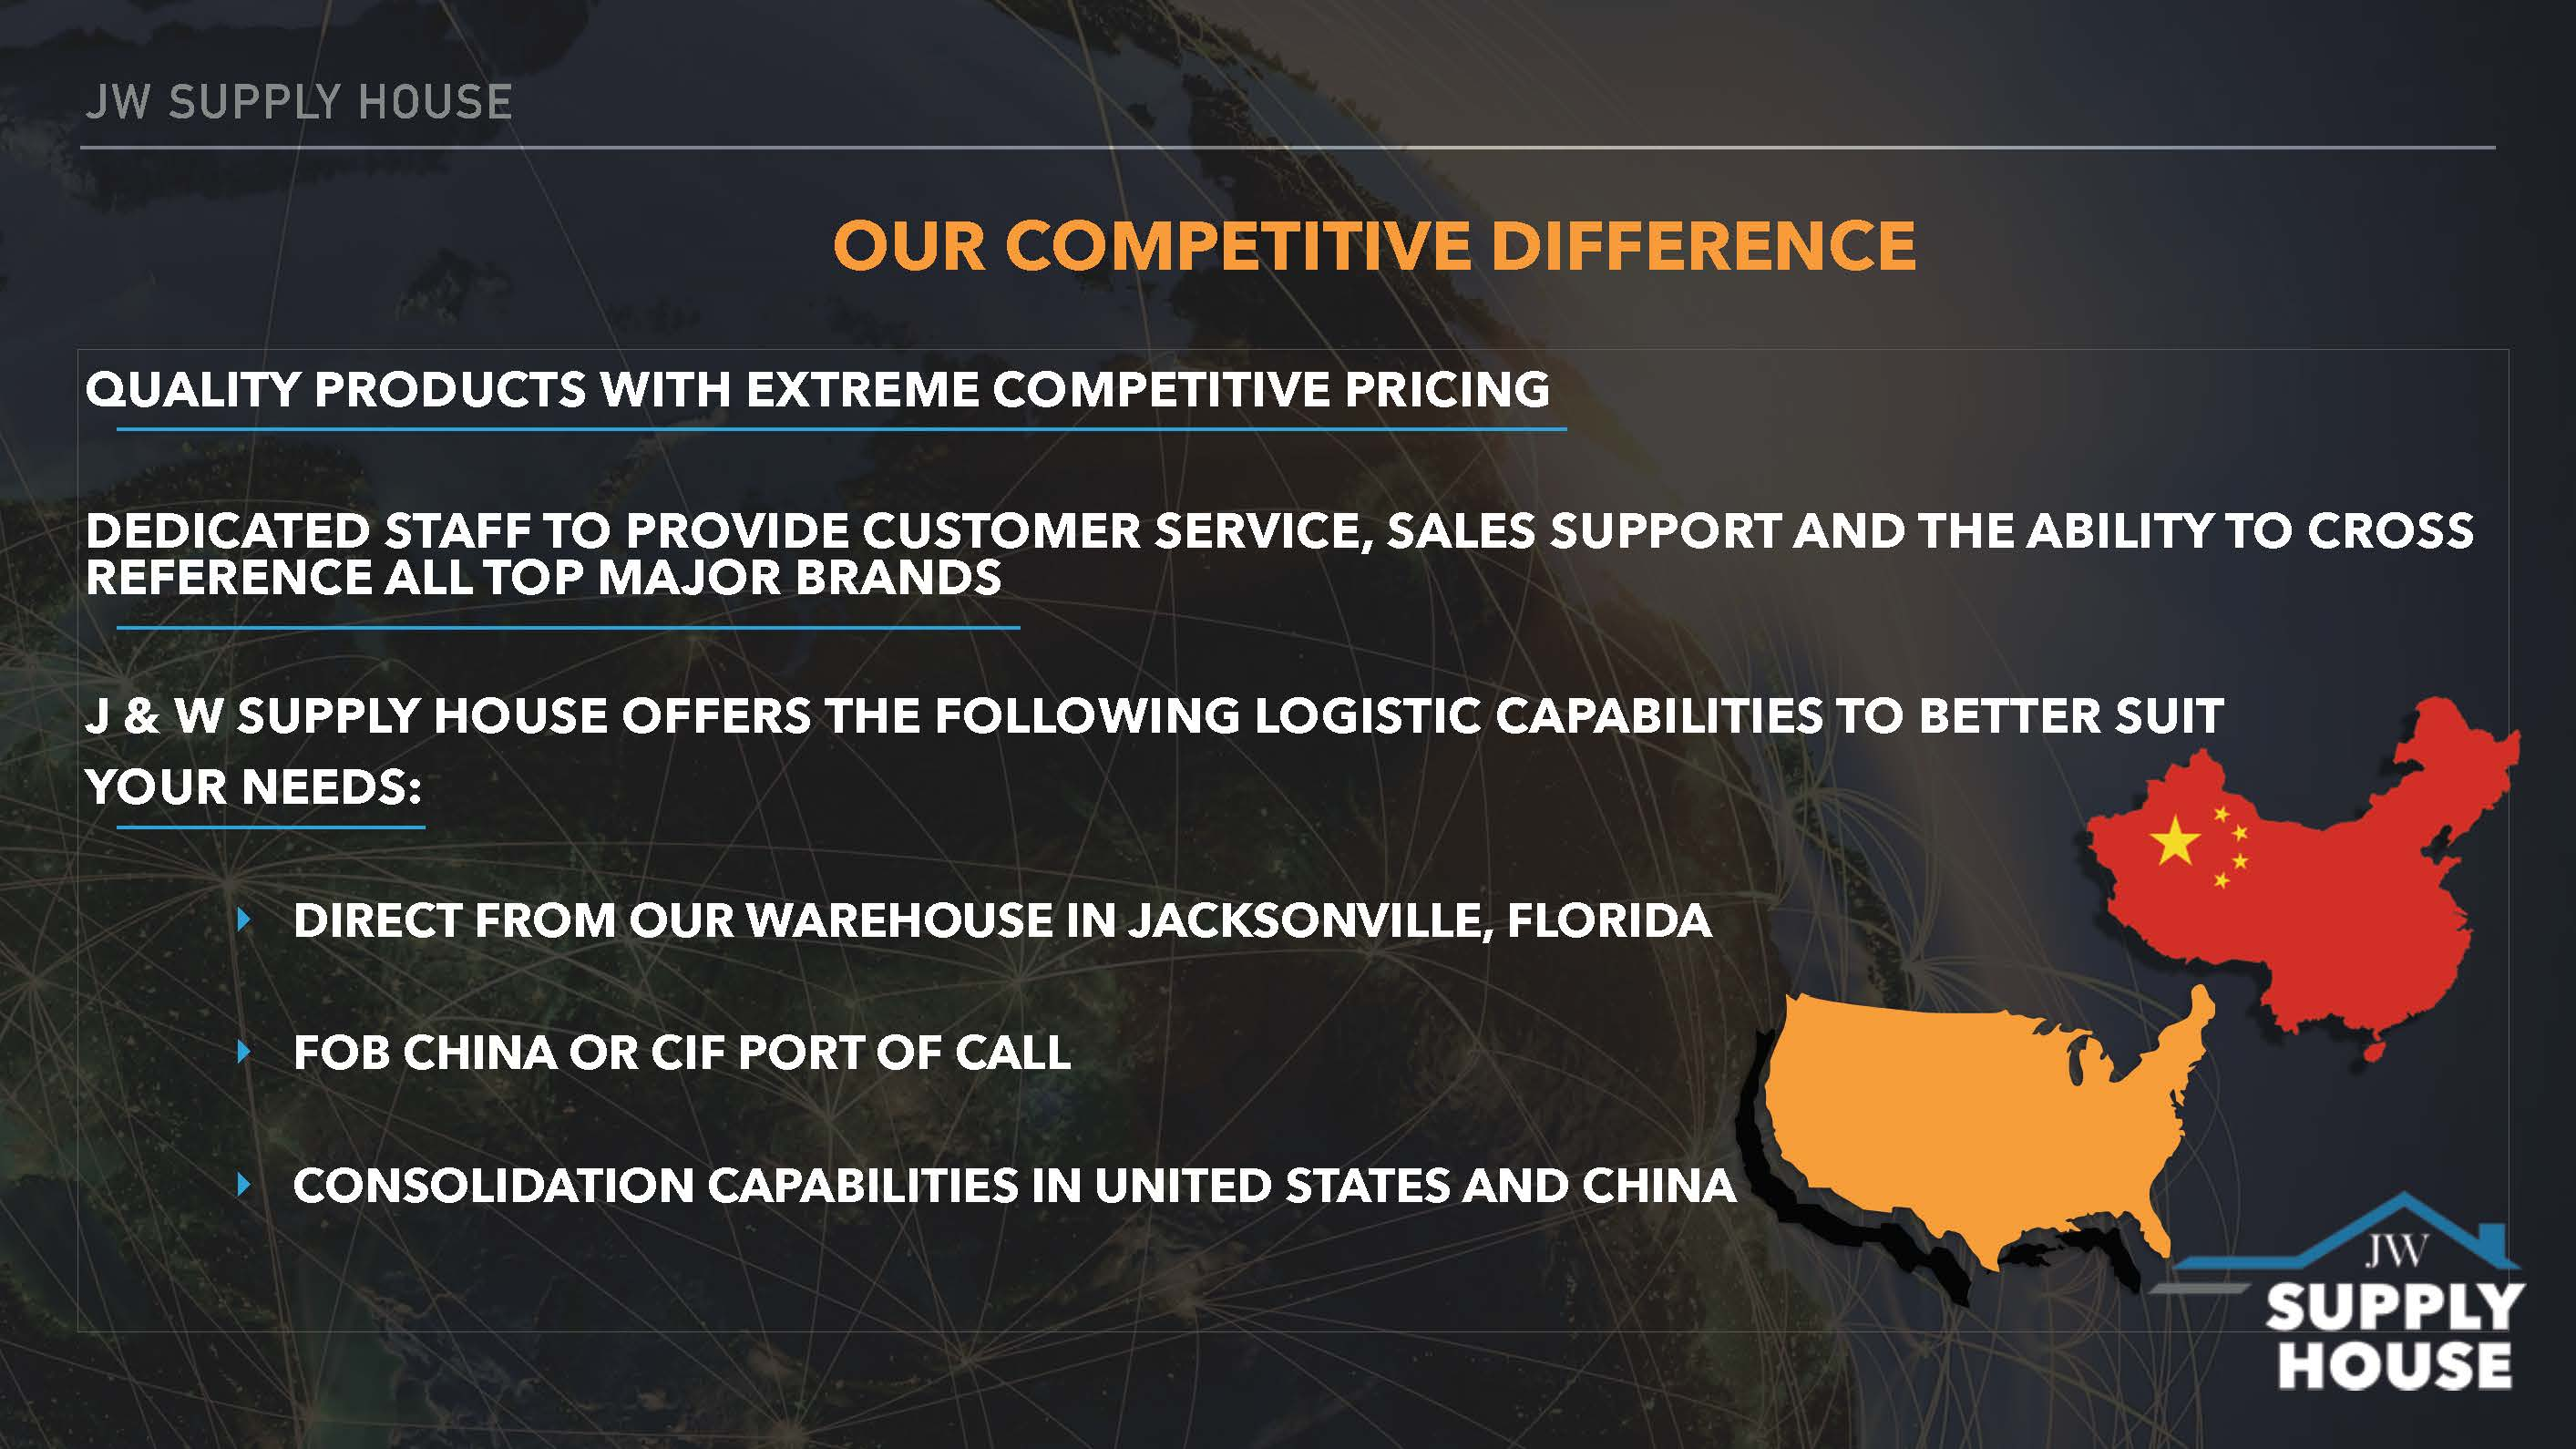 JW Supply House - Our Competitive Difference